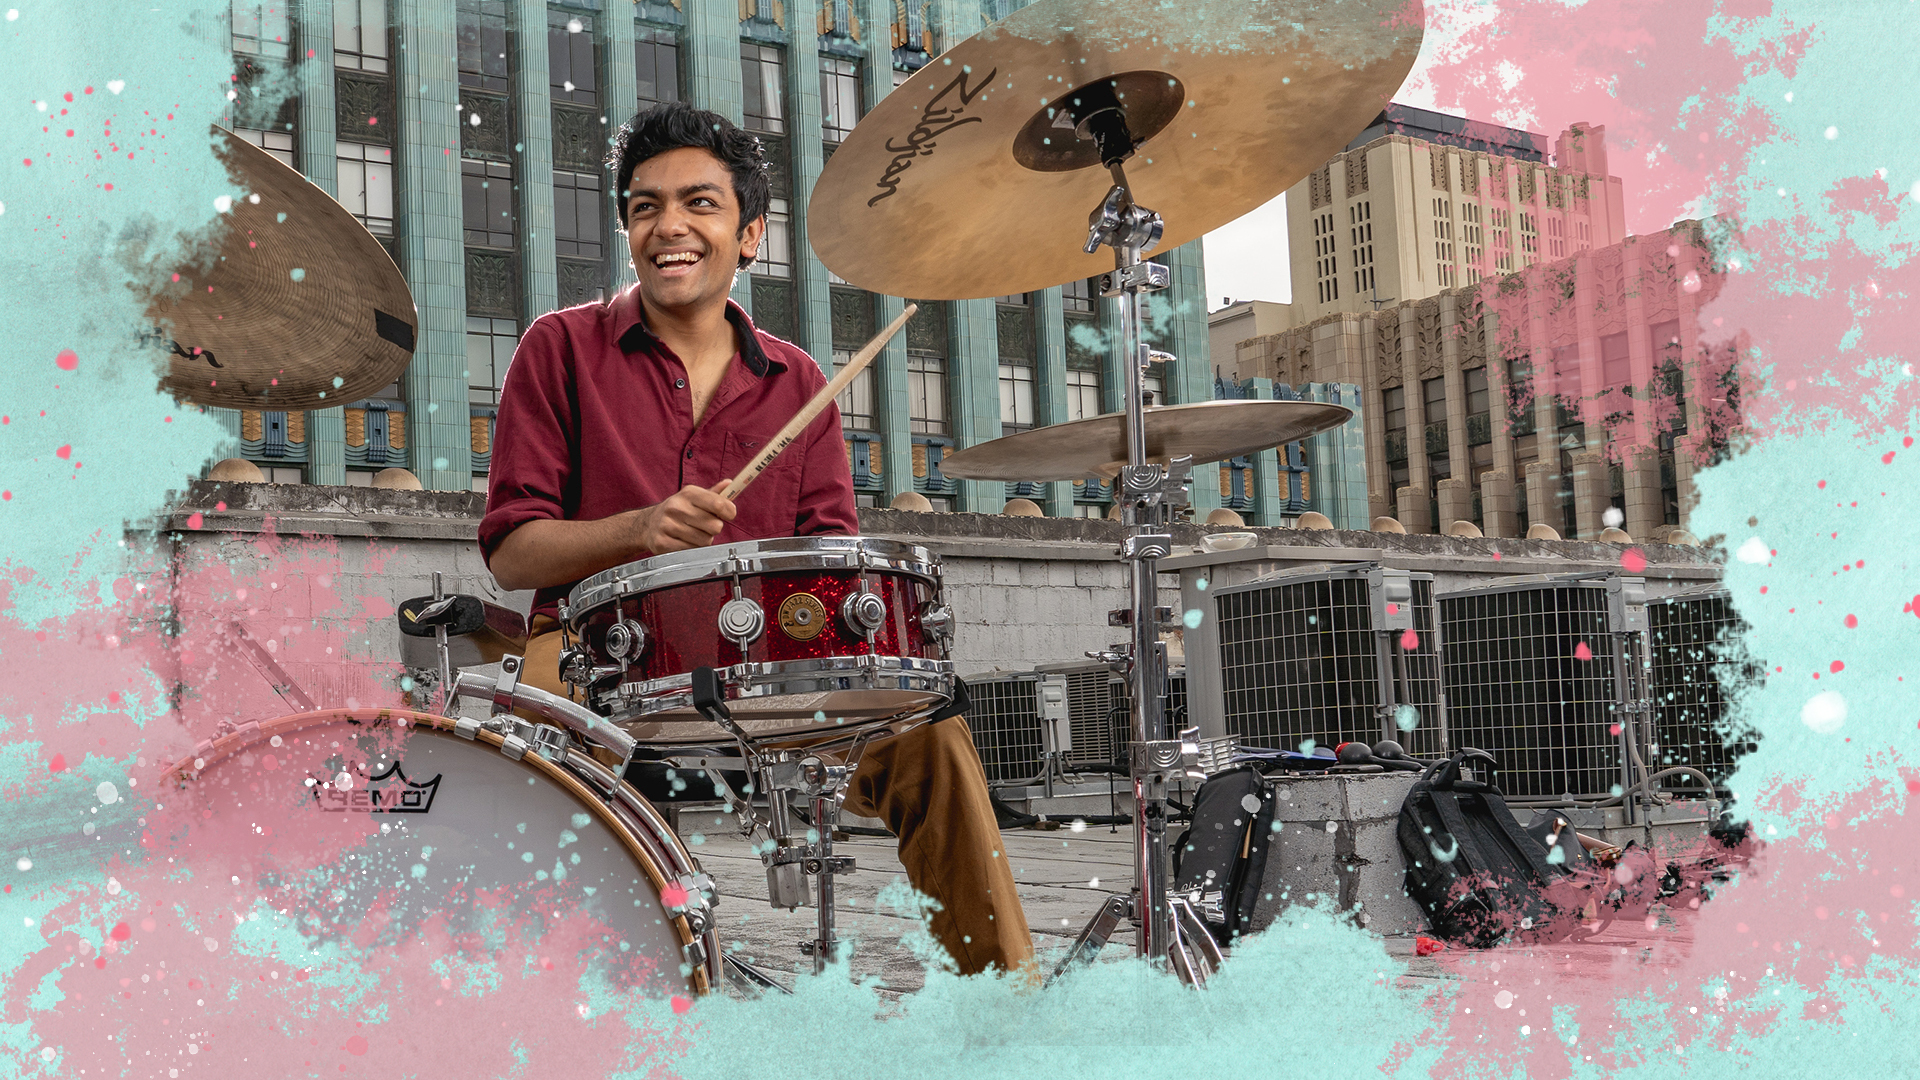 Image of drummer on downtown rooftop, surrounded by an illustration of splashy colors